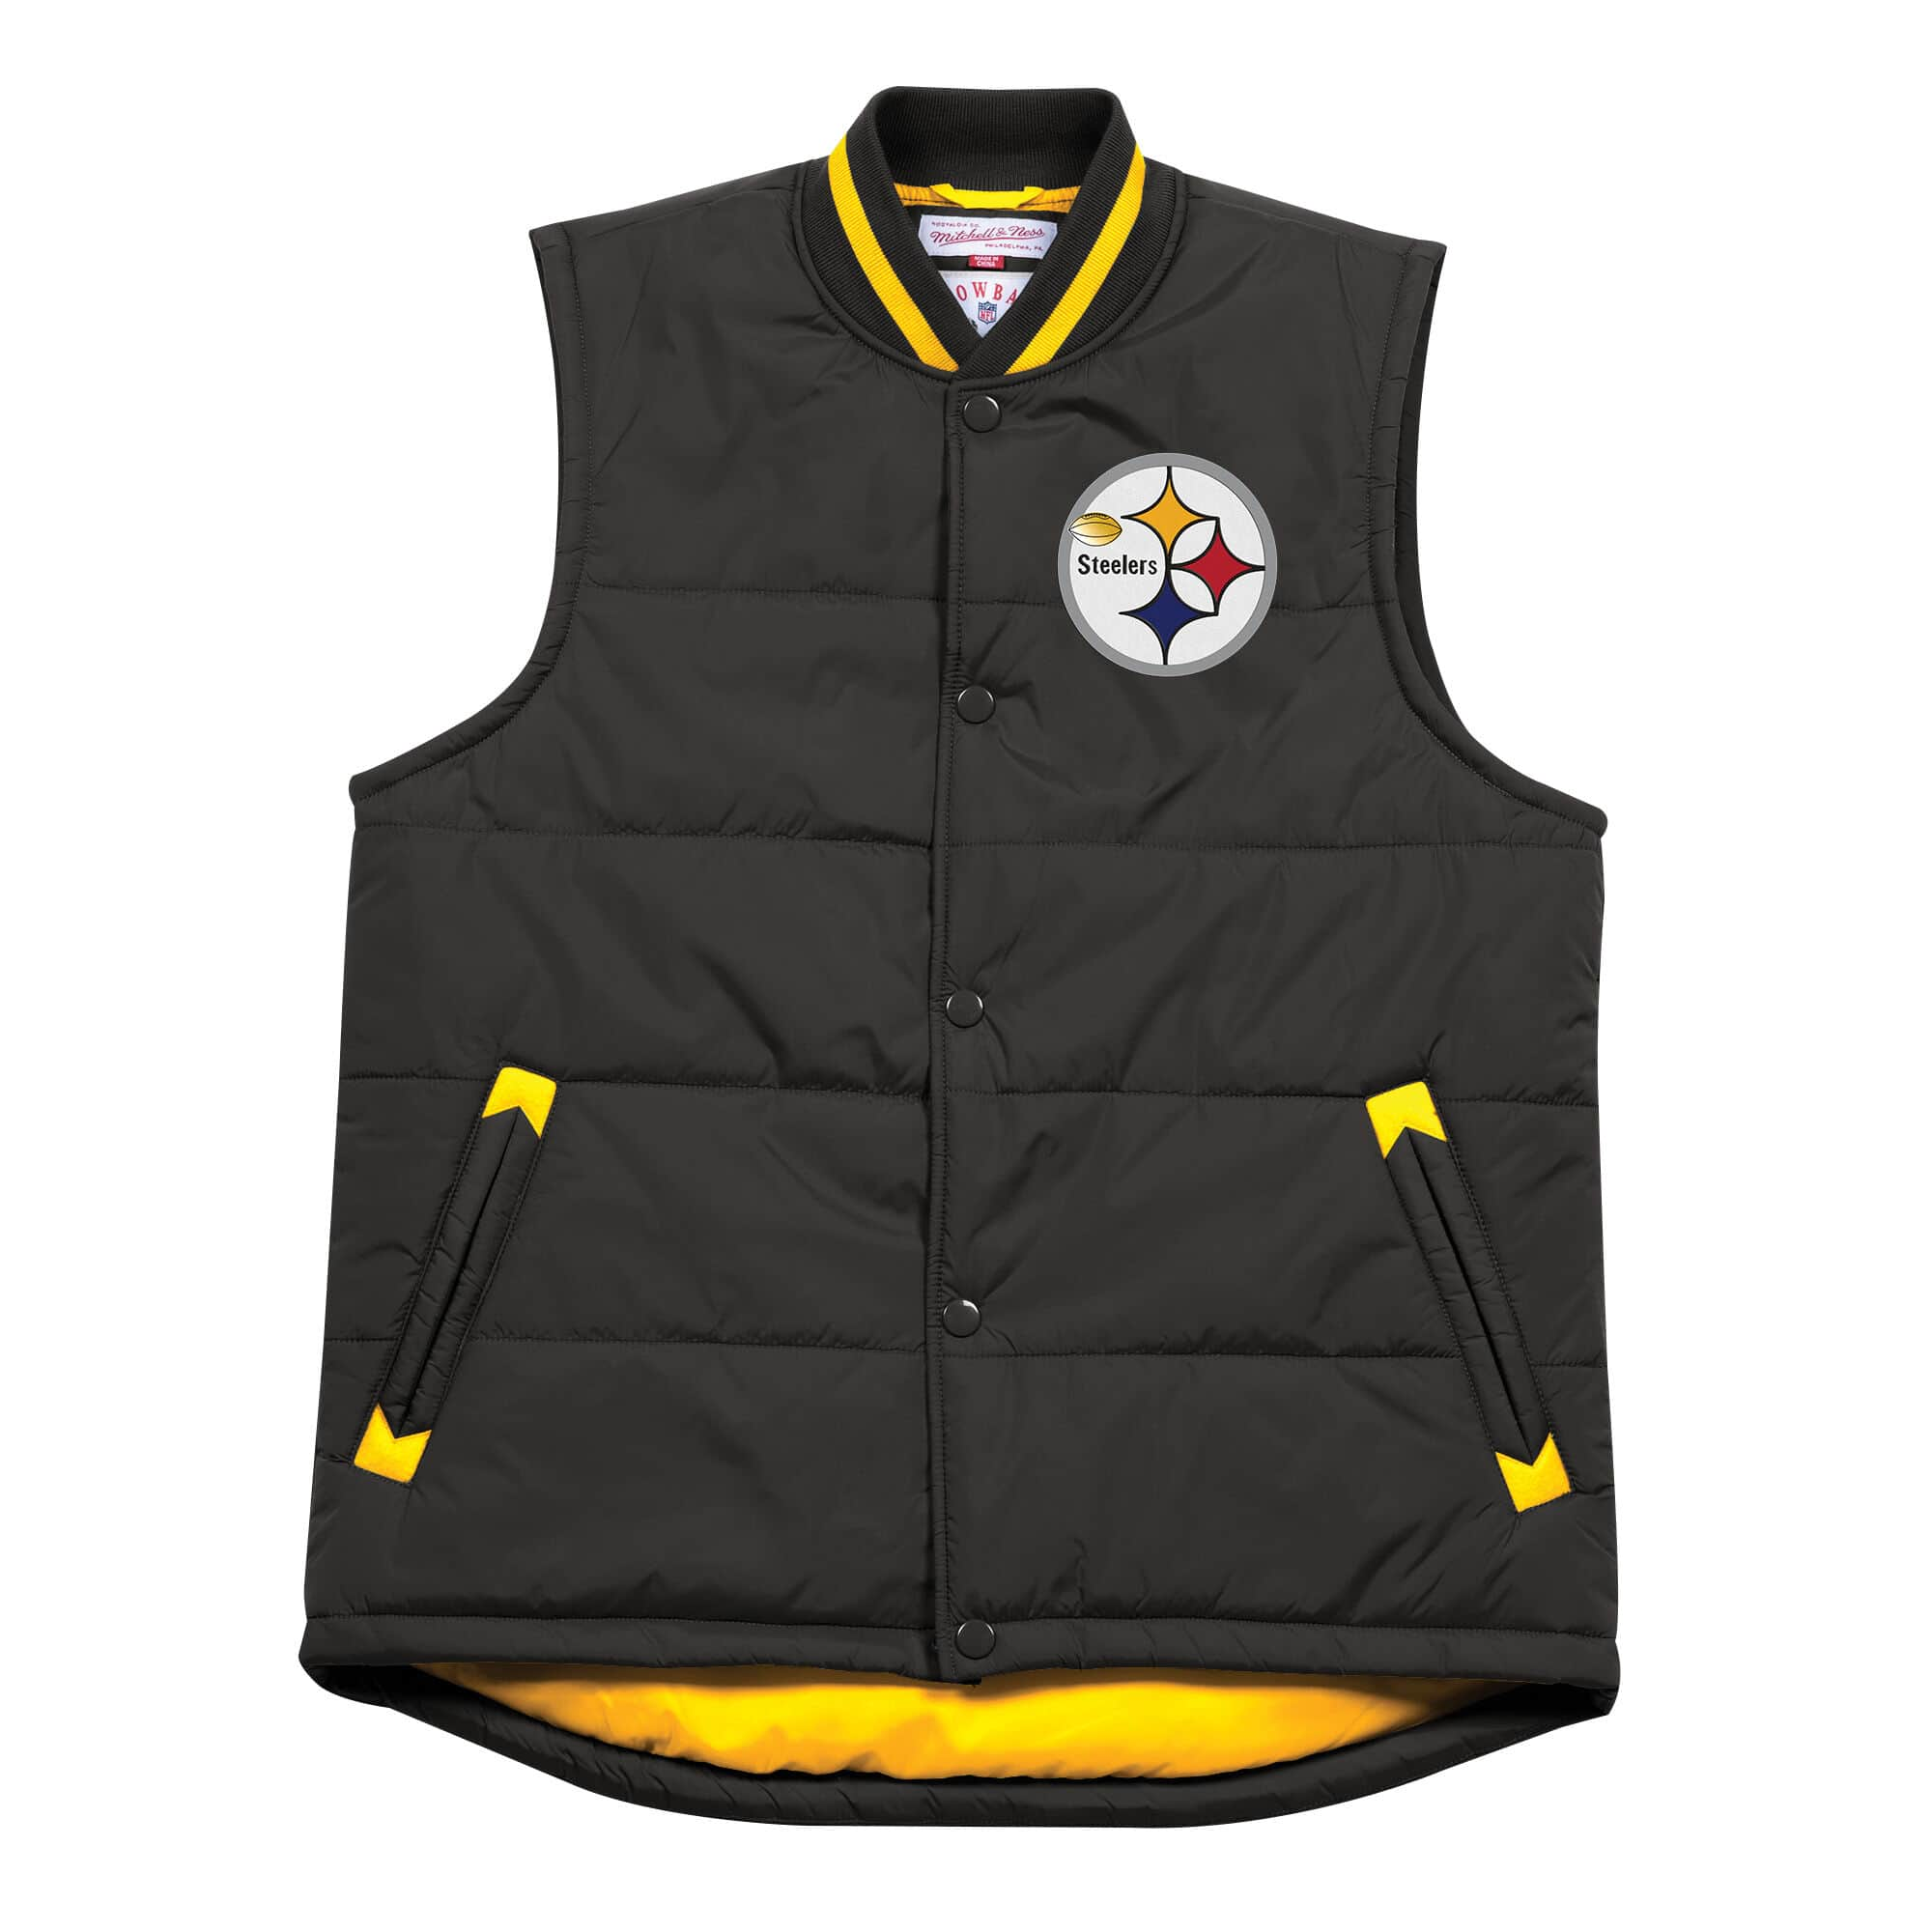 Amazing Catch Vest Pittsburgh Steelers